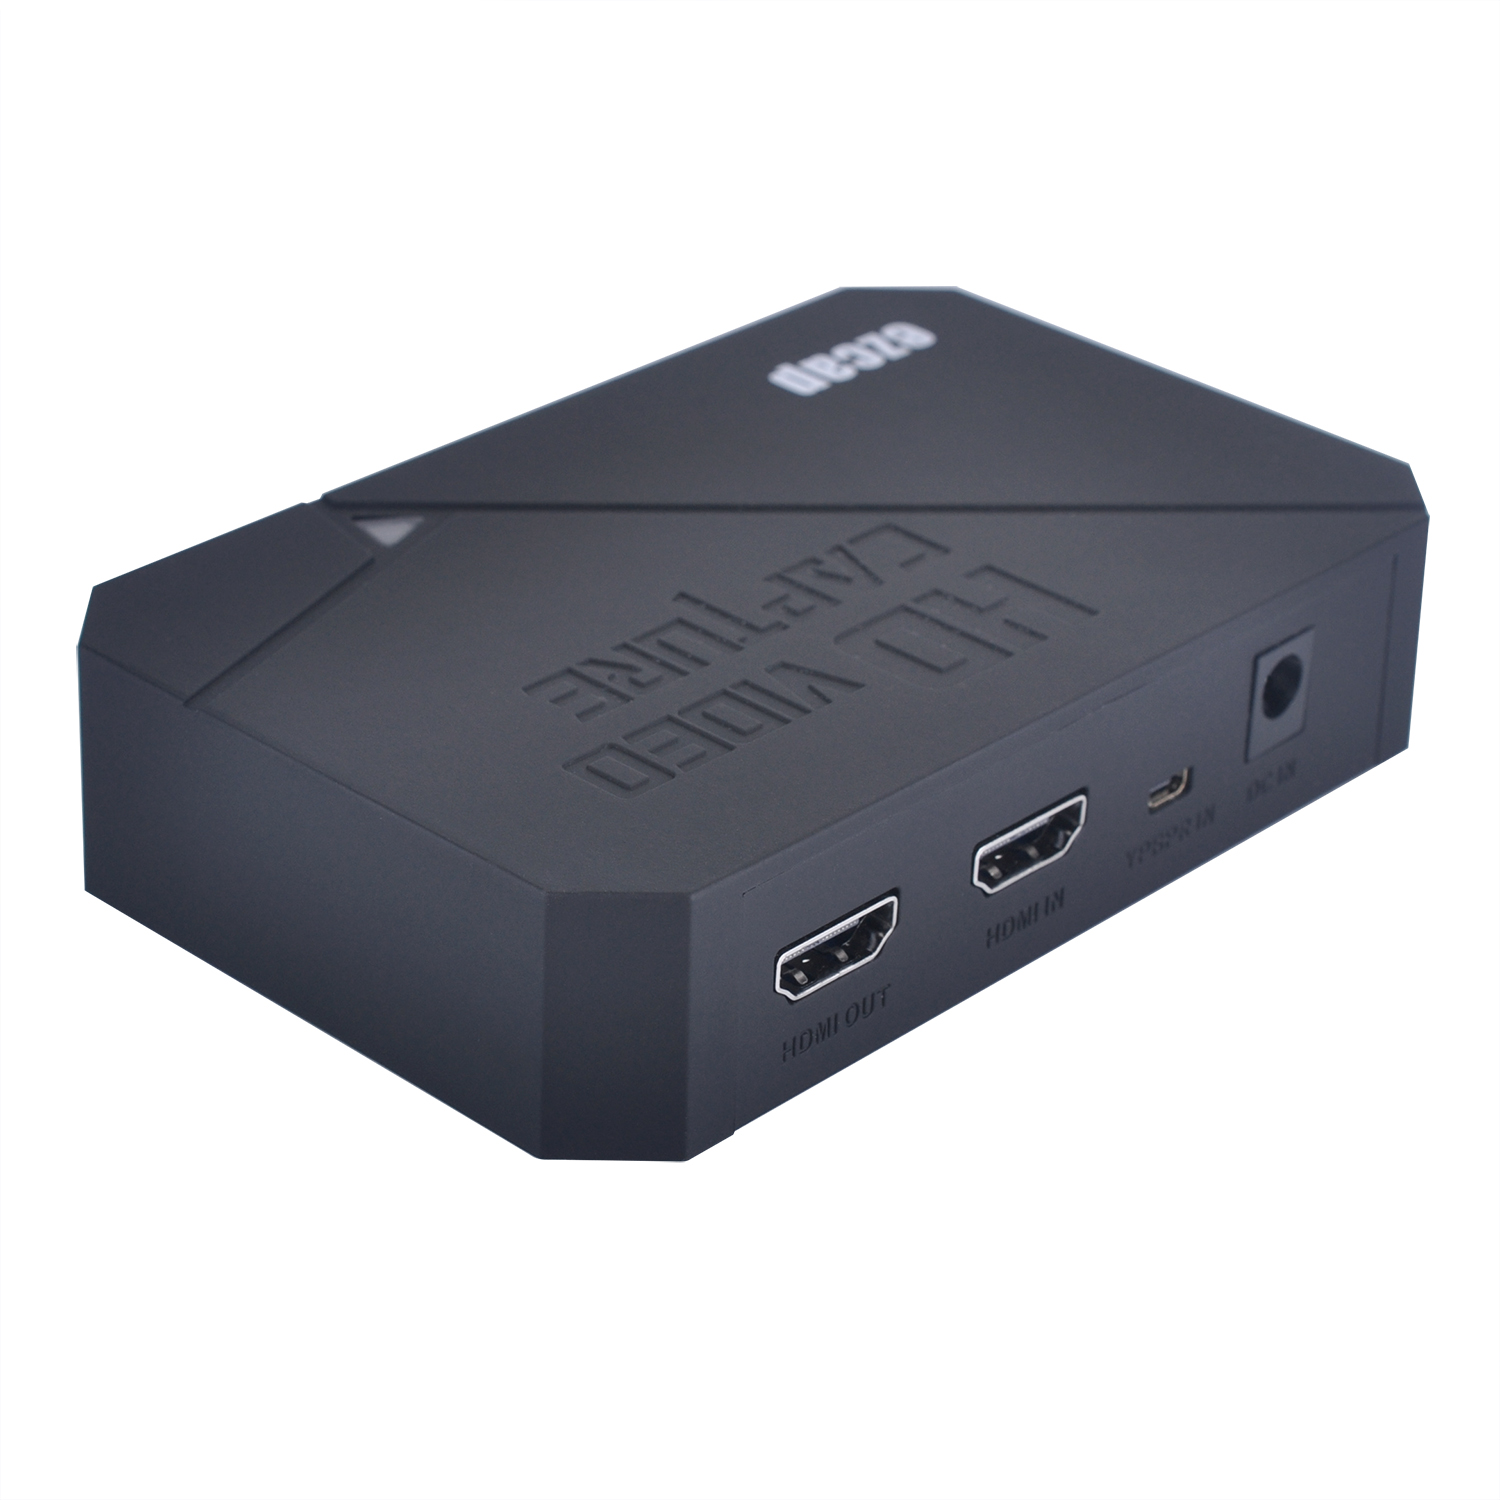 HDMI Game Capture 1080P HD Video Capture Recorder Box for XBOX One 360 PS3WII U ezcap280PC